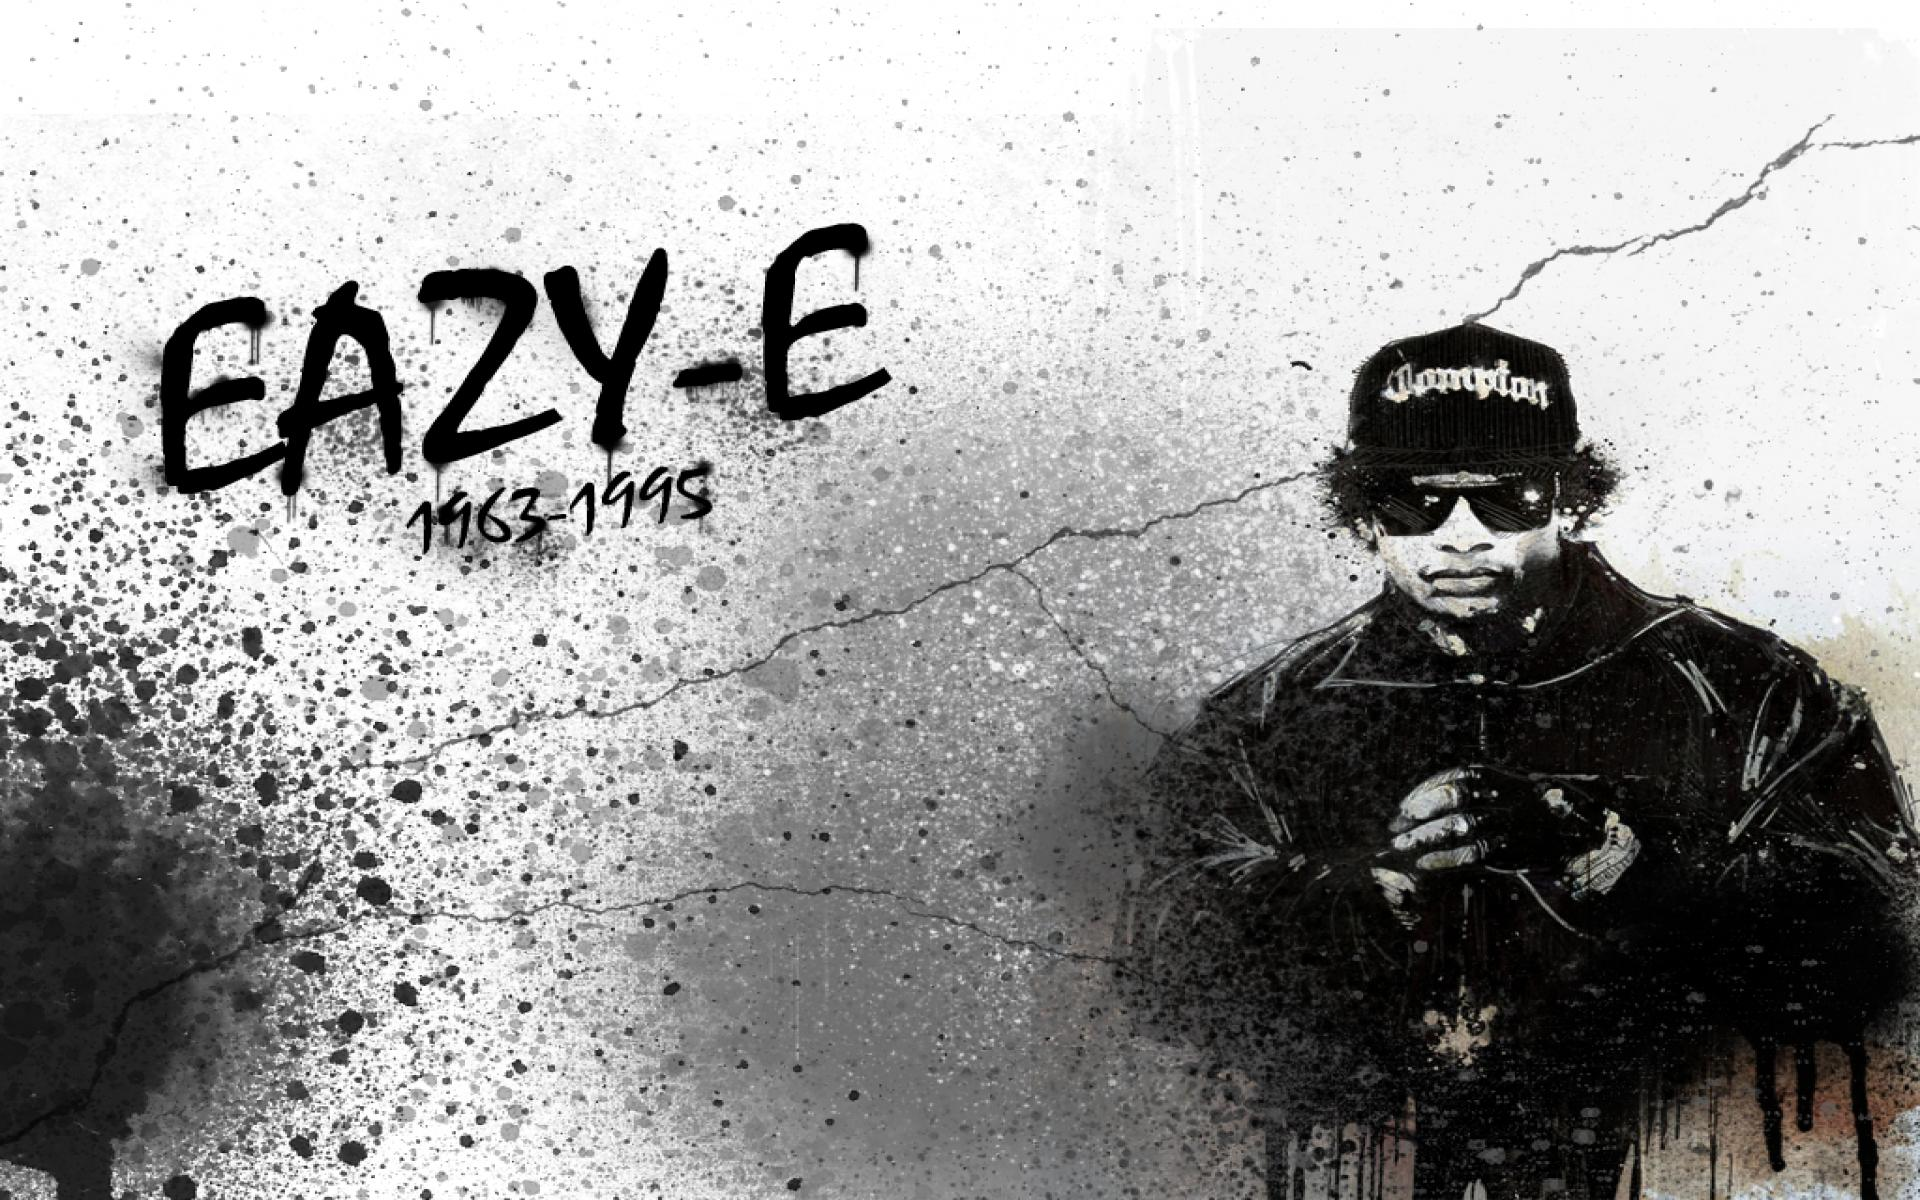 Eazy E Wallpapers 53BN18R 063 Mb   4USkY 1920x1200